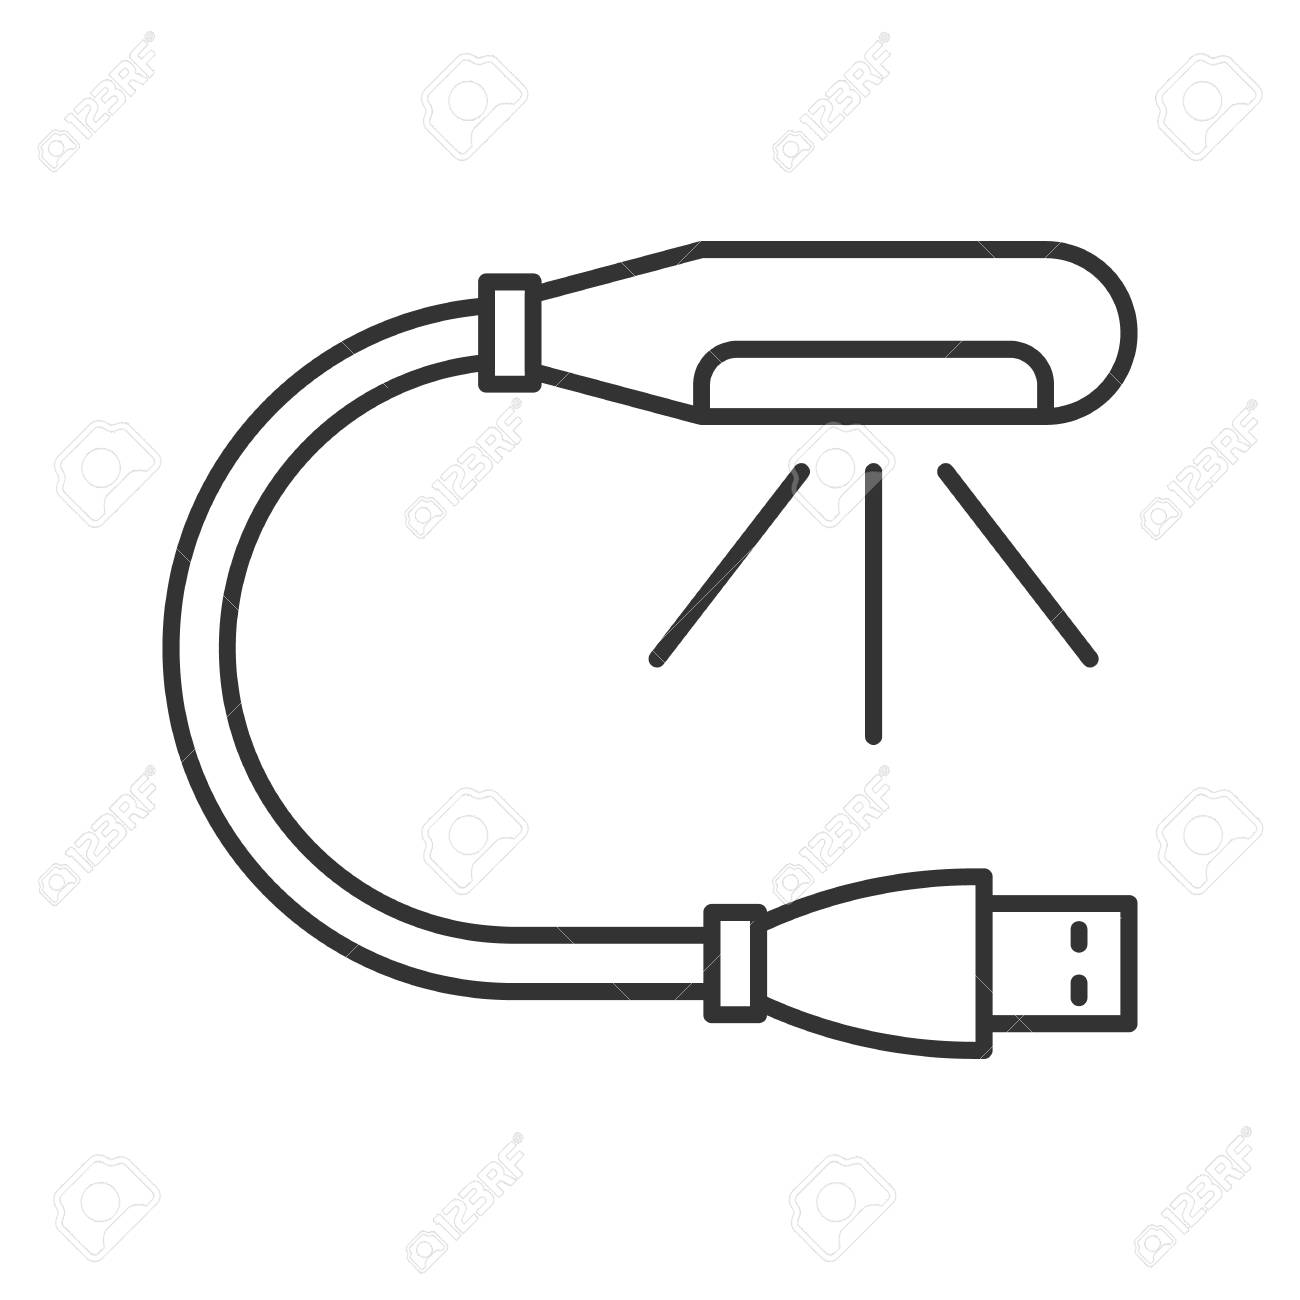 Usb Lamp Linear Icon Thin Line Illustration Lamp For Computer